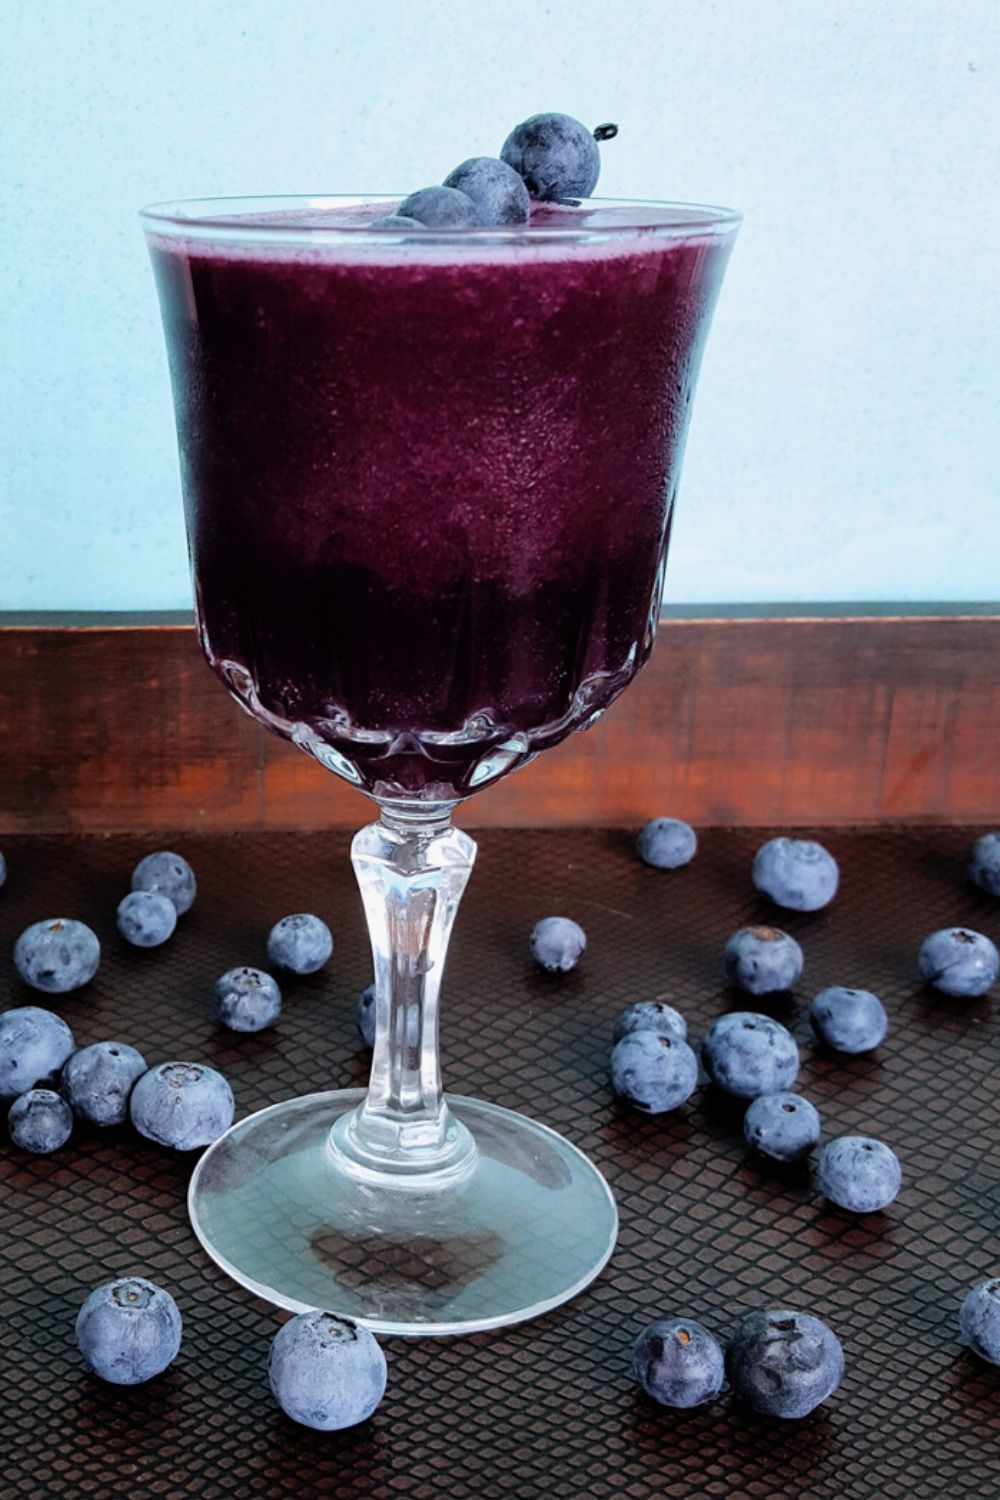 The Roxy | A Spiced Blueberry Jam Cocktail